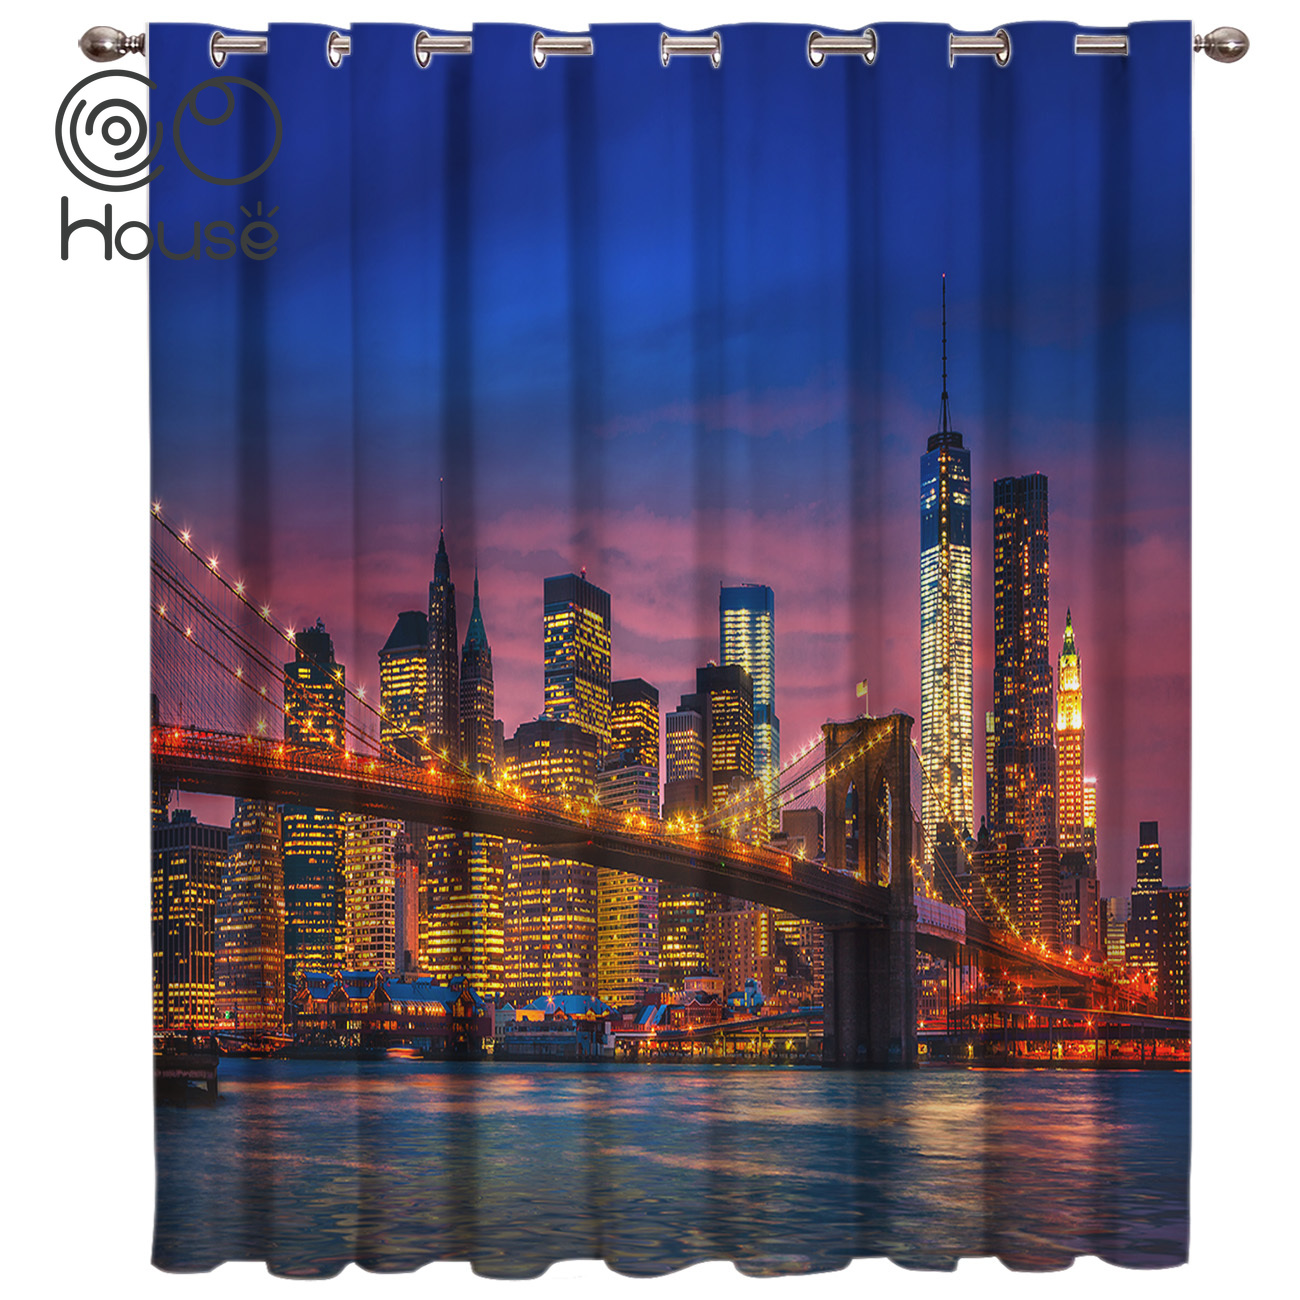 COCOHouse Brooklyn Window Treatments Curtains Valance Living Room Blackout Bathroom Kids Window Treatment Hardware Sets Curtains